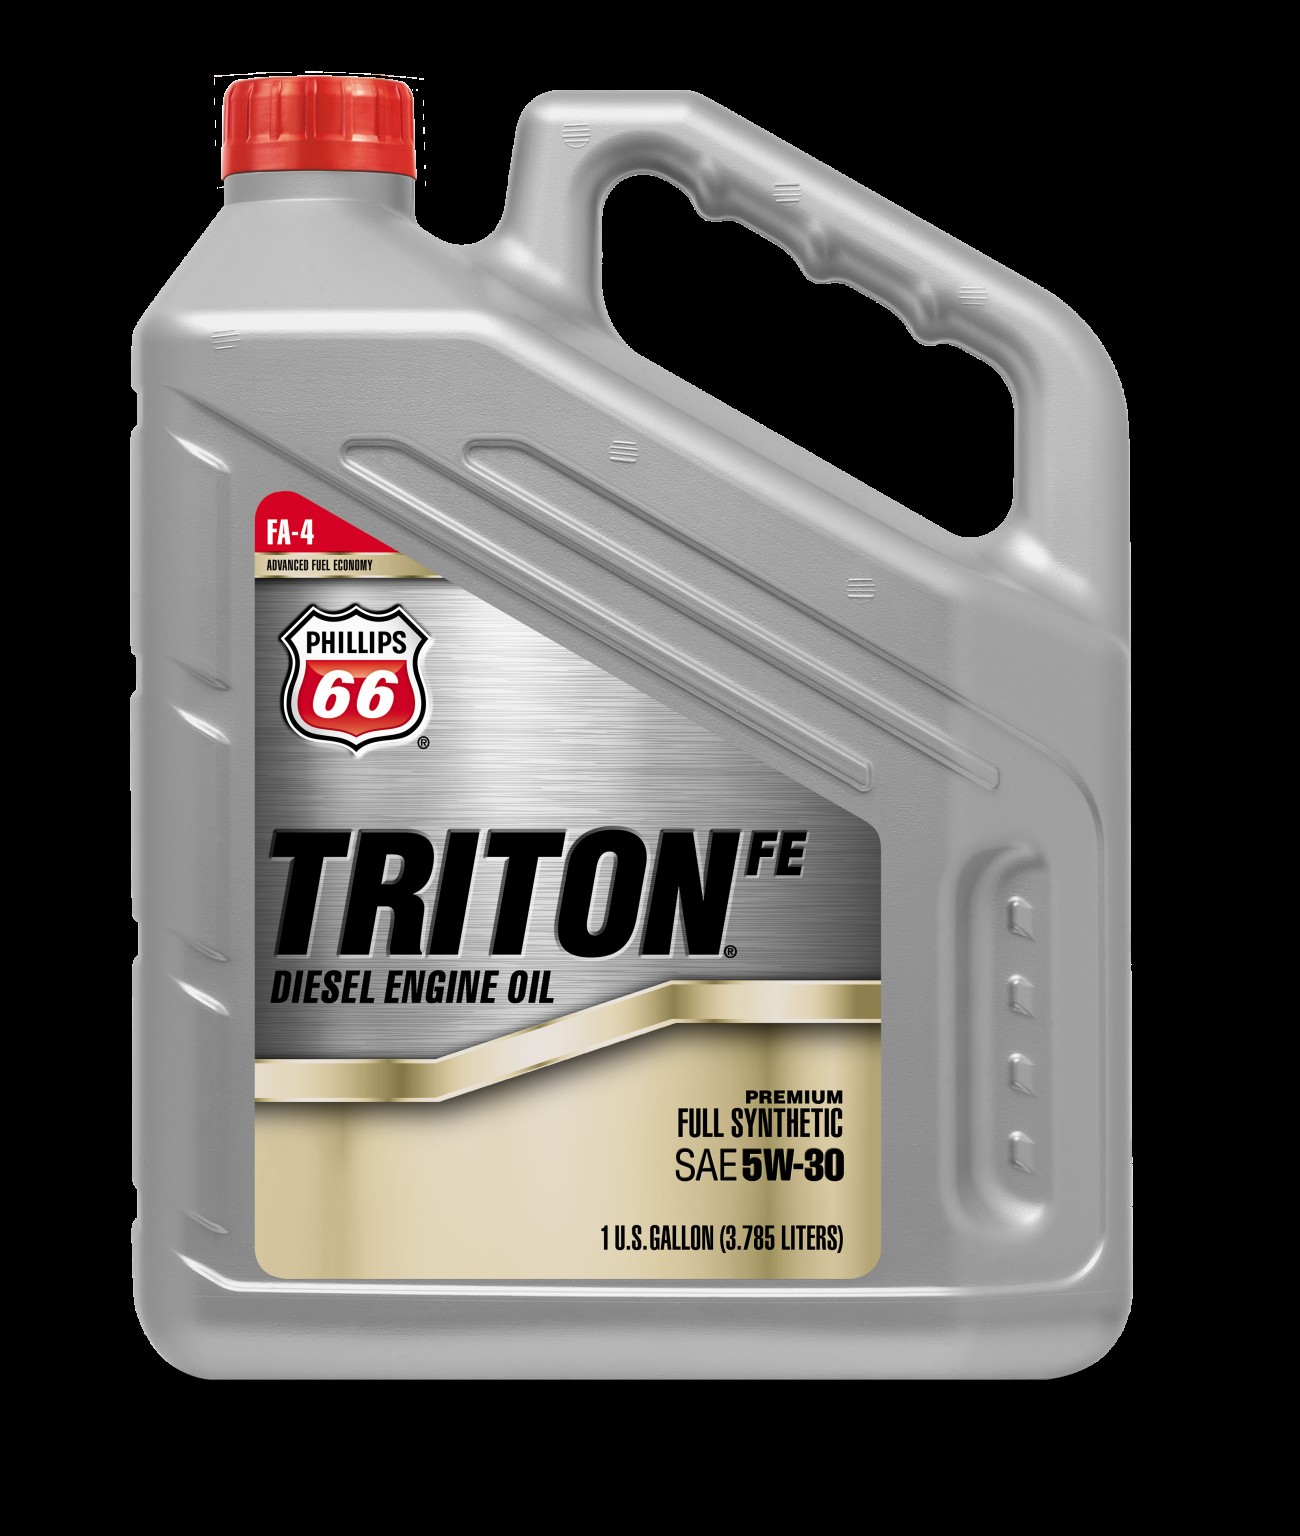 Phillips 66 Triton Synthetic 5w-30